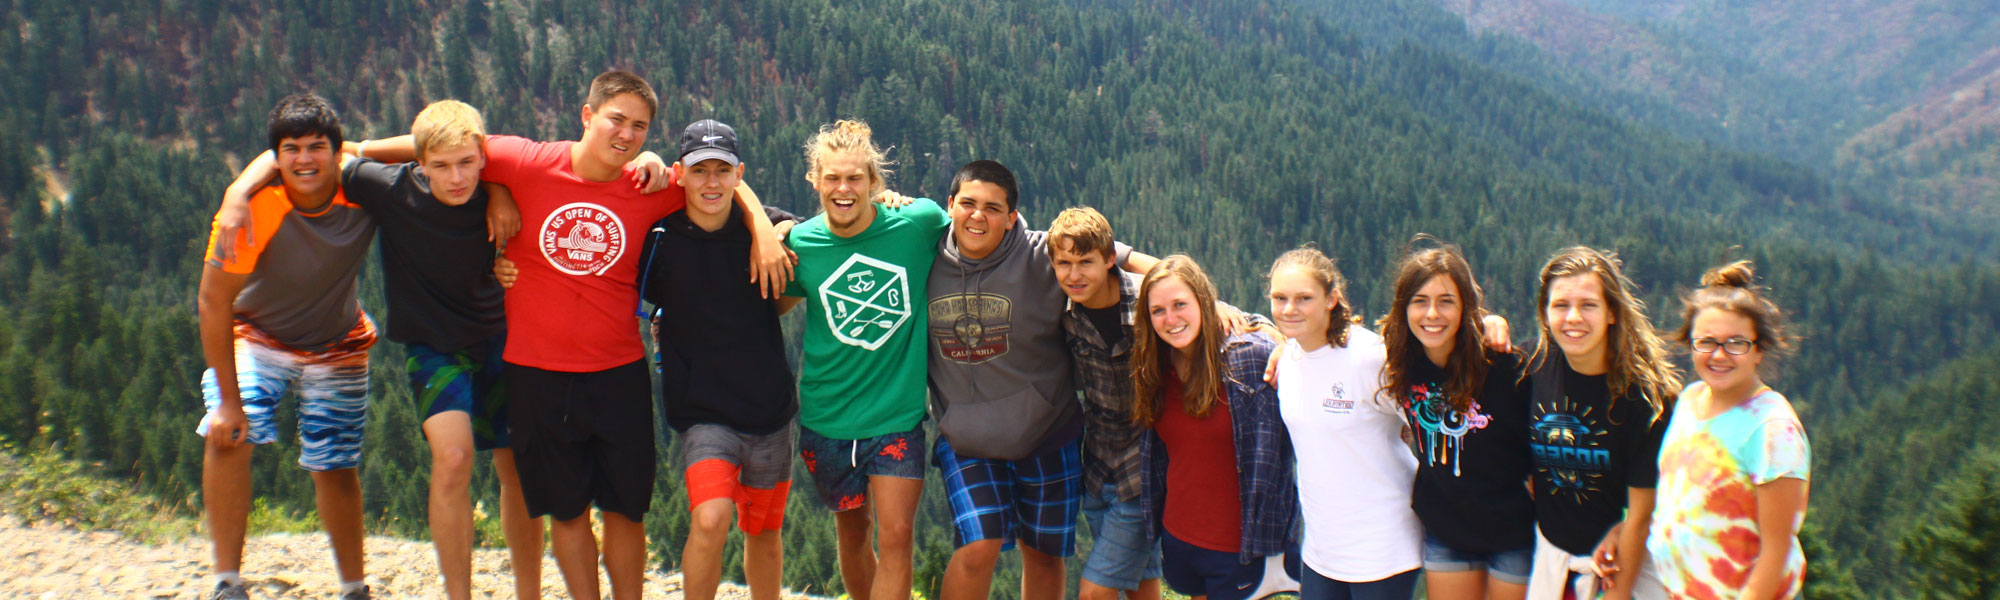 Kidder Creek Group Photo on Mountain